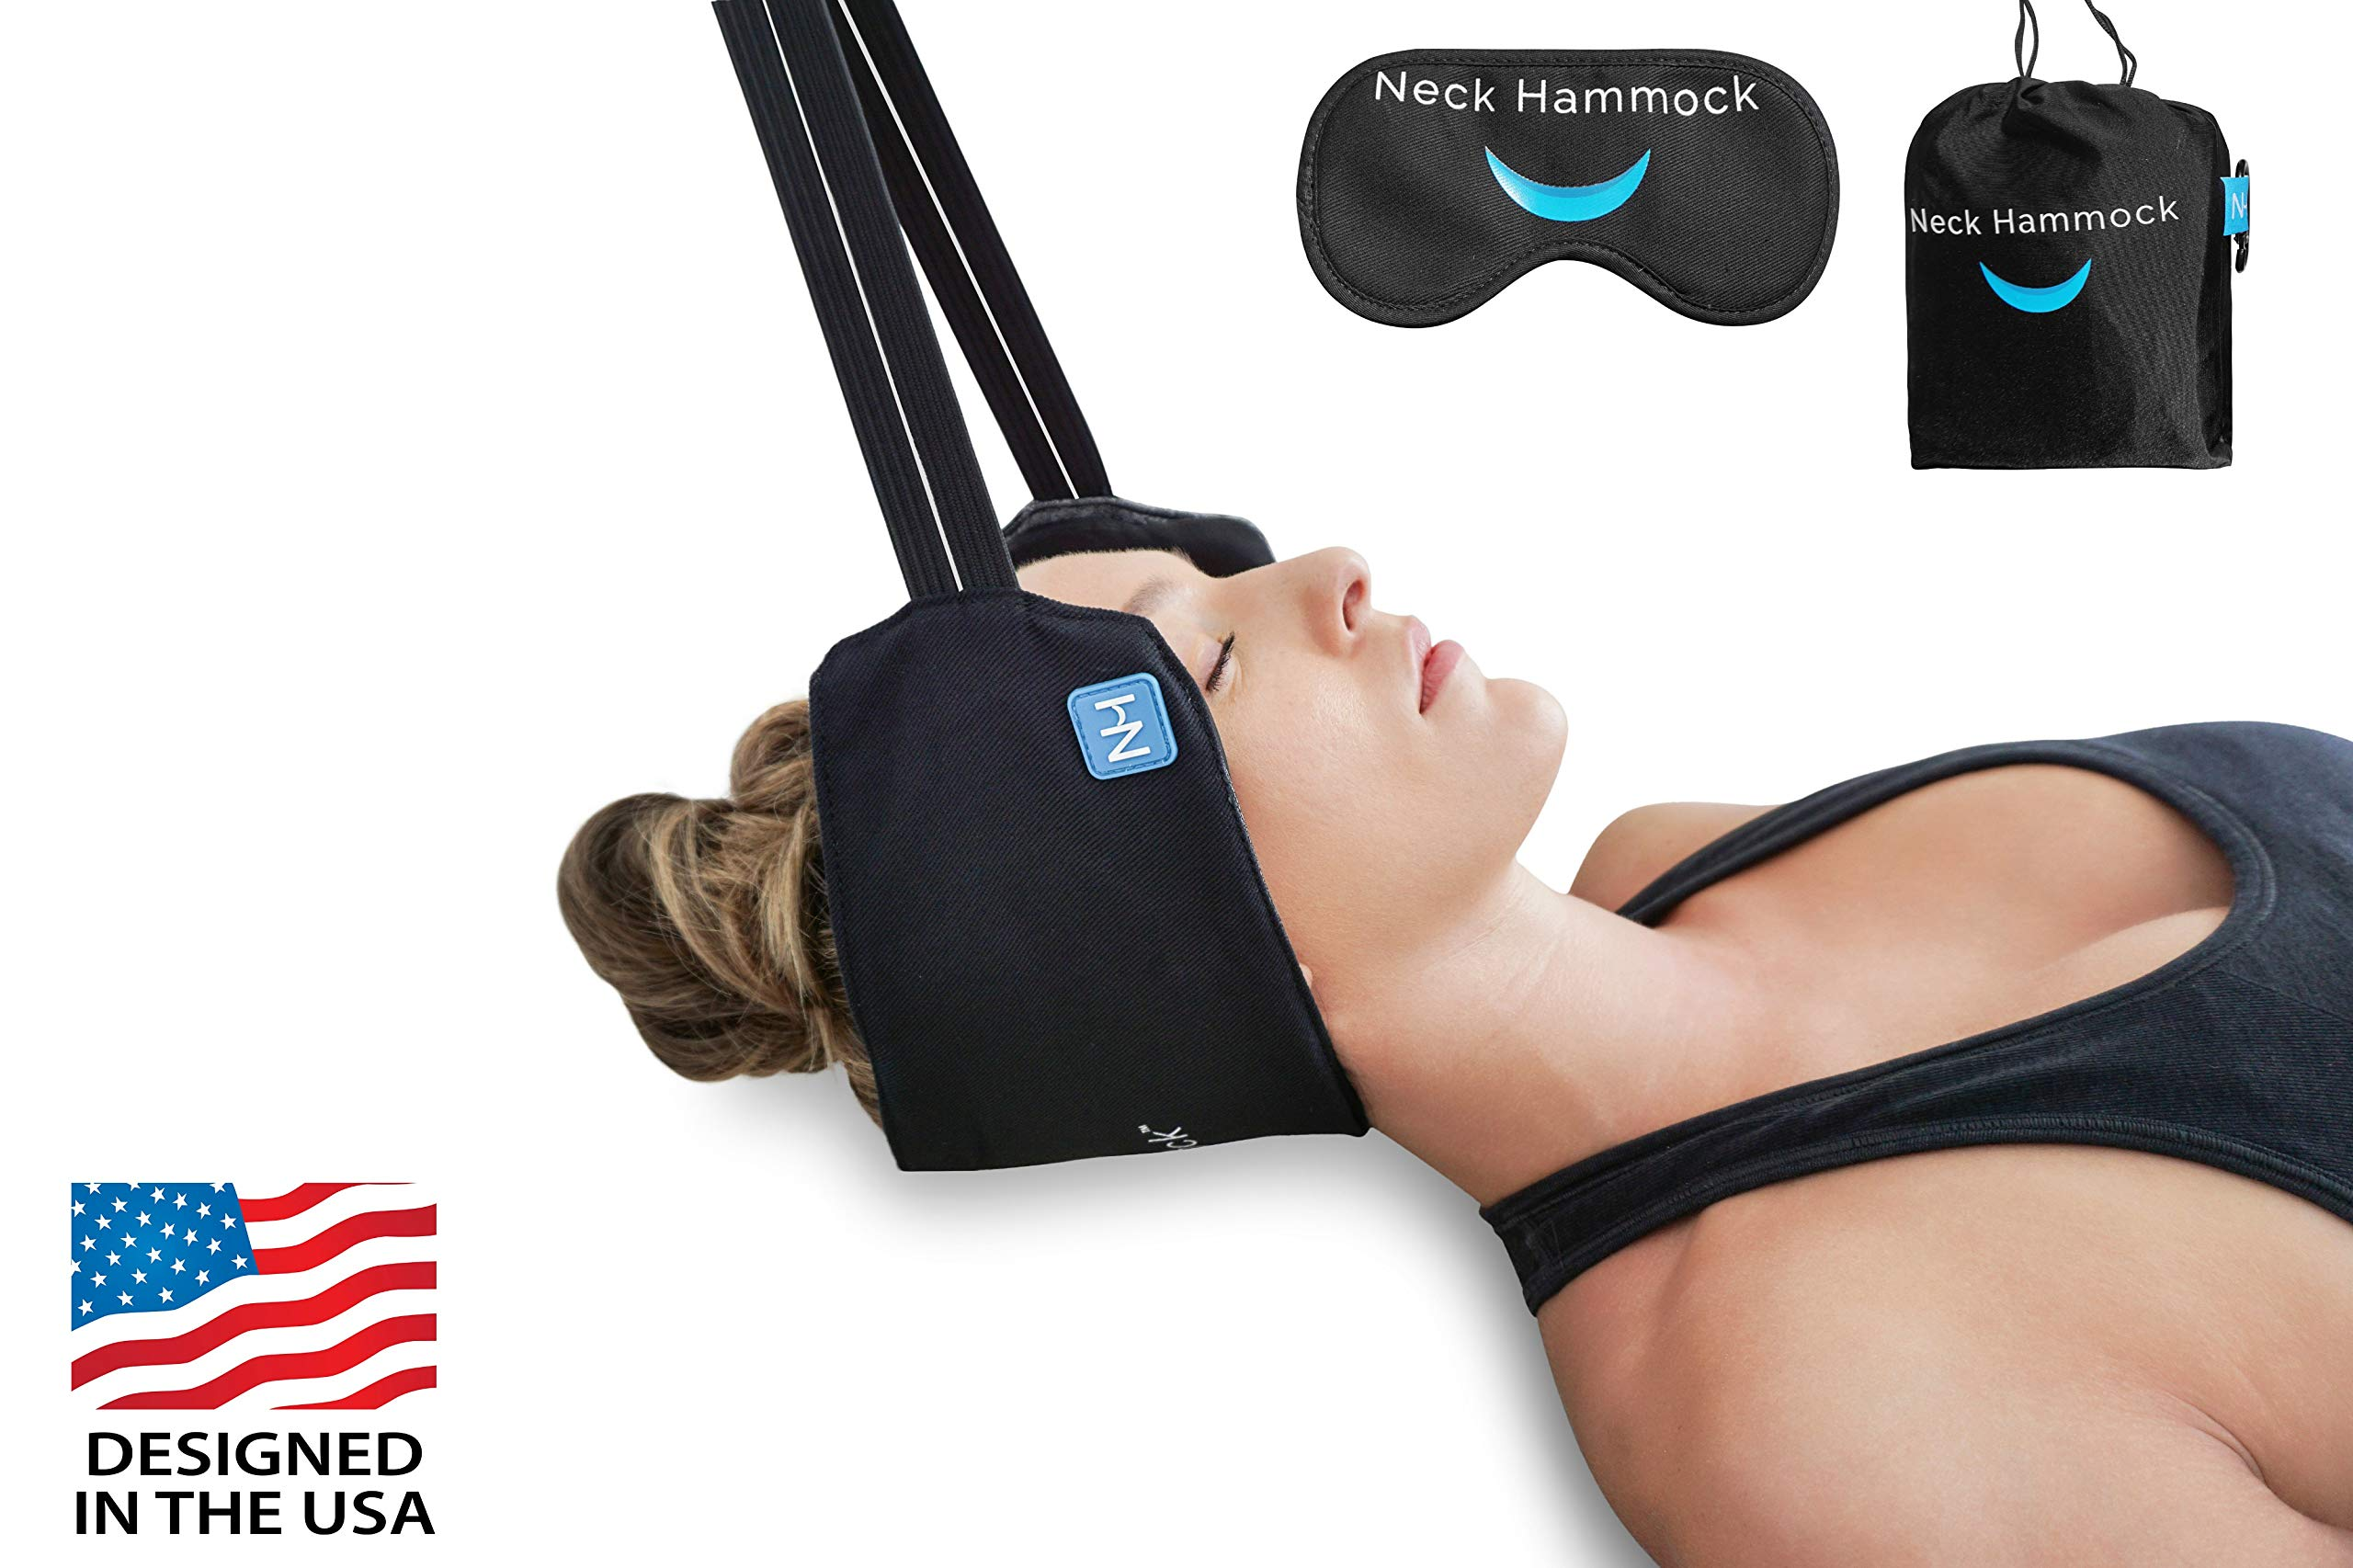 The Neck Hammock 2.0 - The Original Portable Cervical Traction and Relaxation Device. Easily Attach to Any Door or Railing for Chronic Neck Pain Relief in 10 Minutes or Less